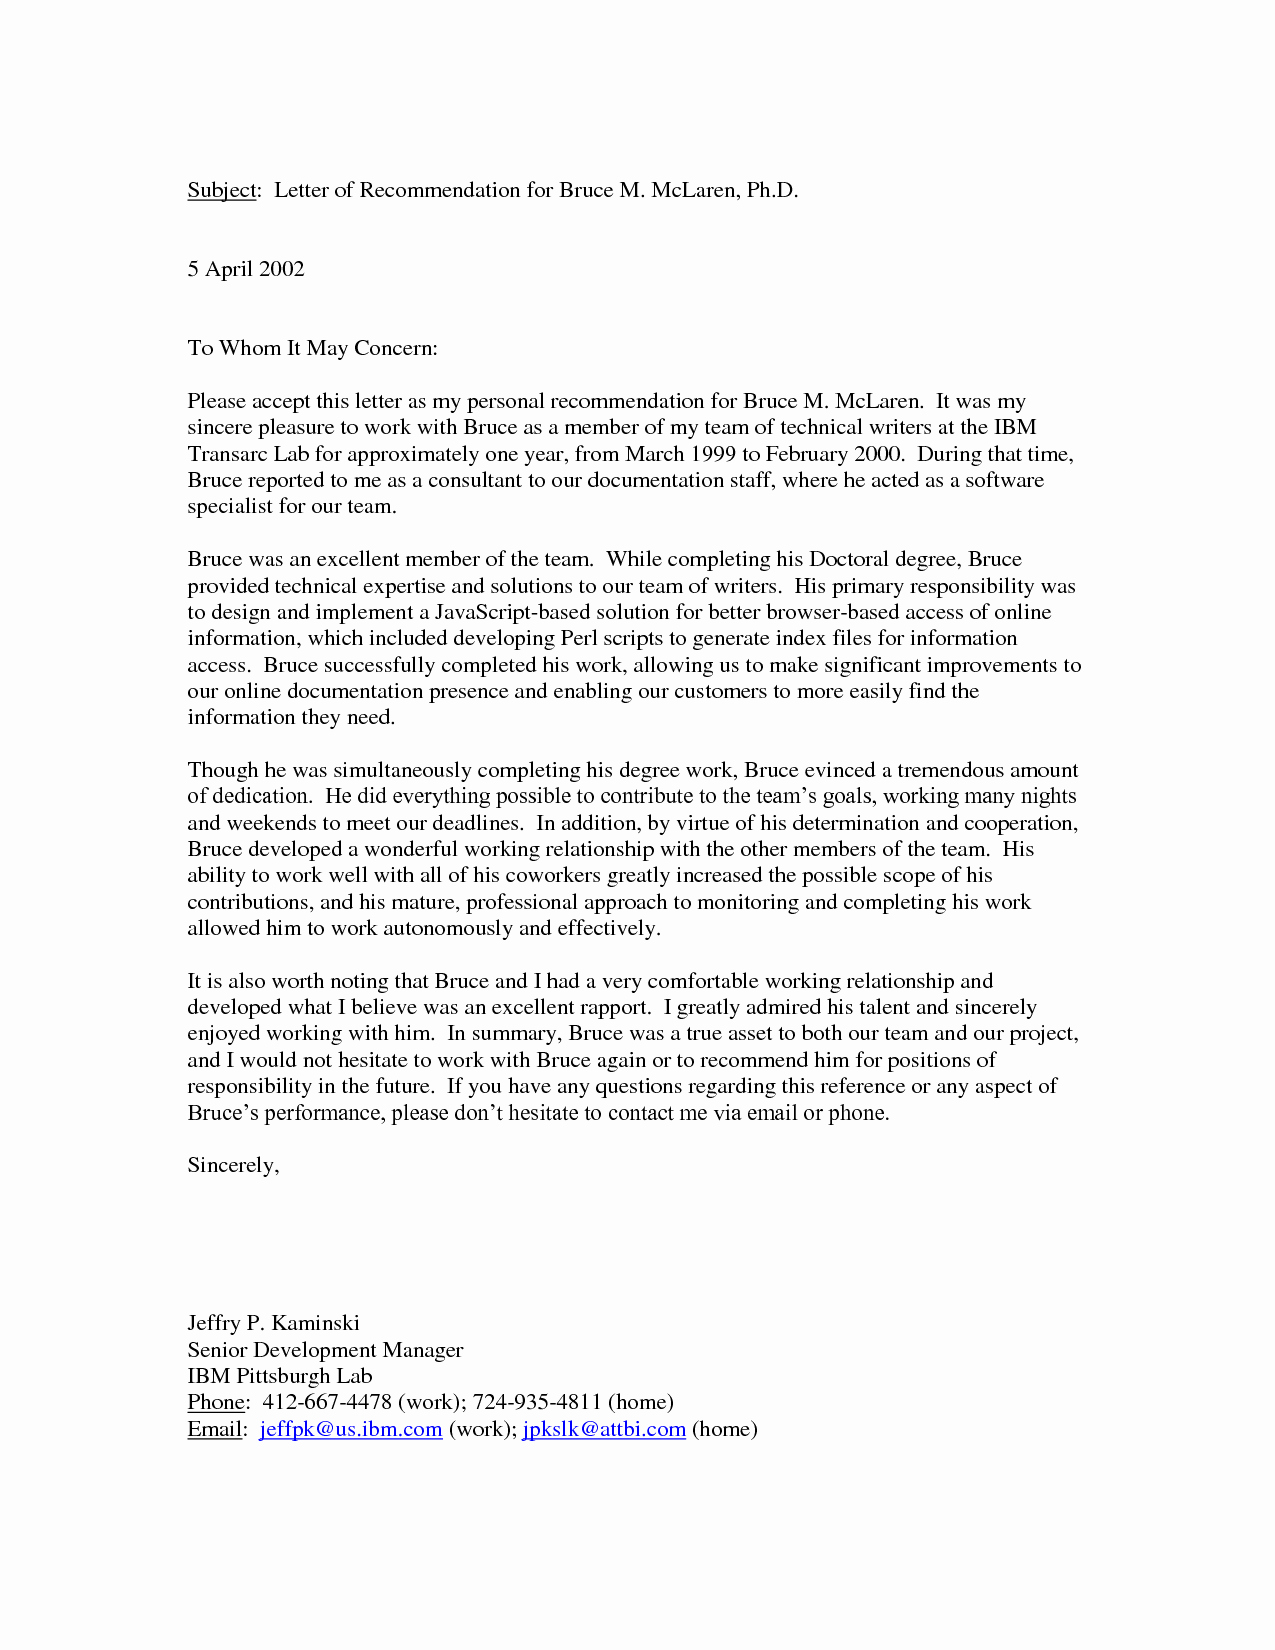 Letter Of Recommendation Letter Template Elegant Personal Reference Letter Re Mendationletter